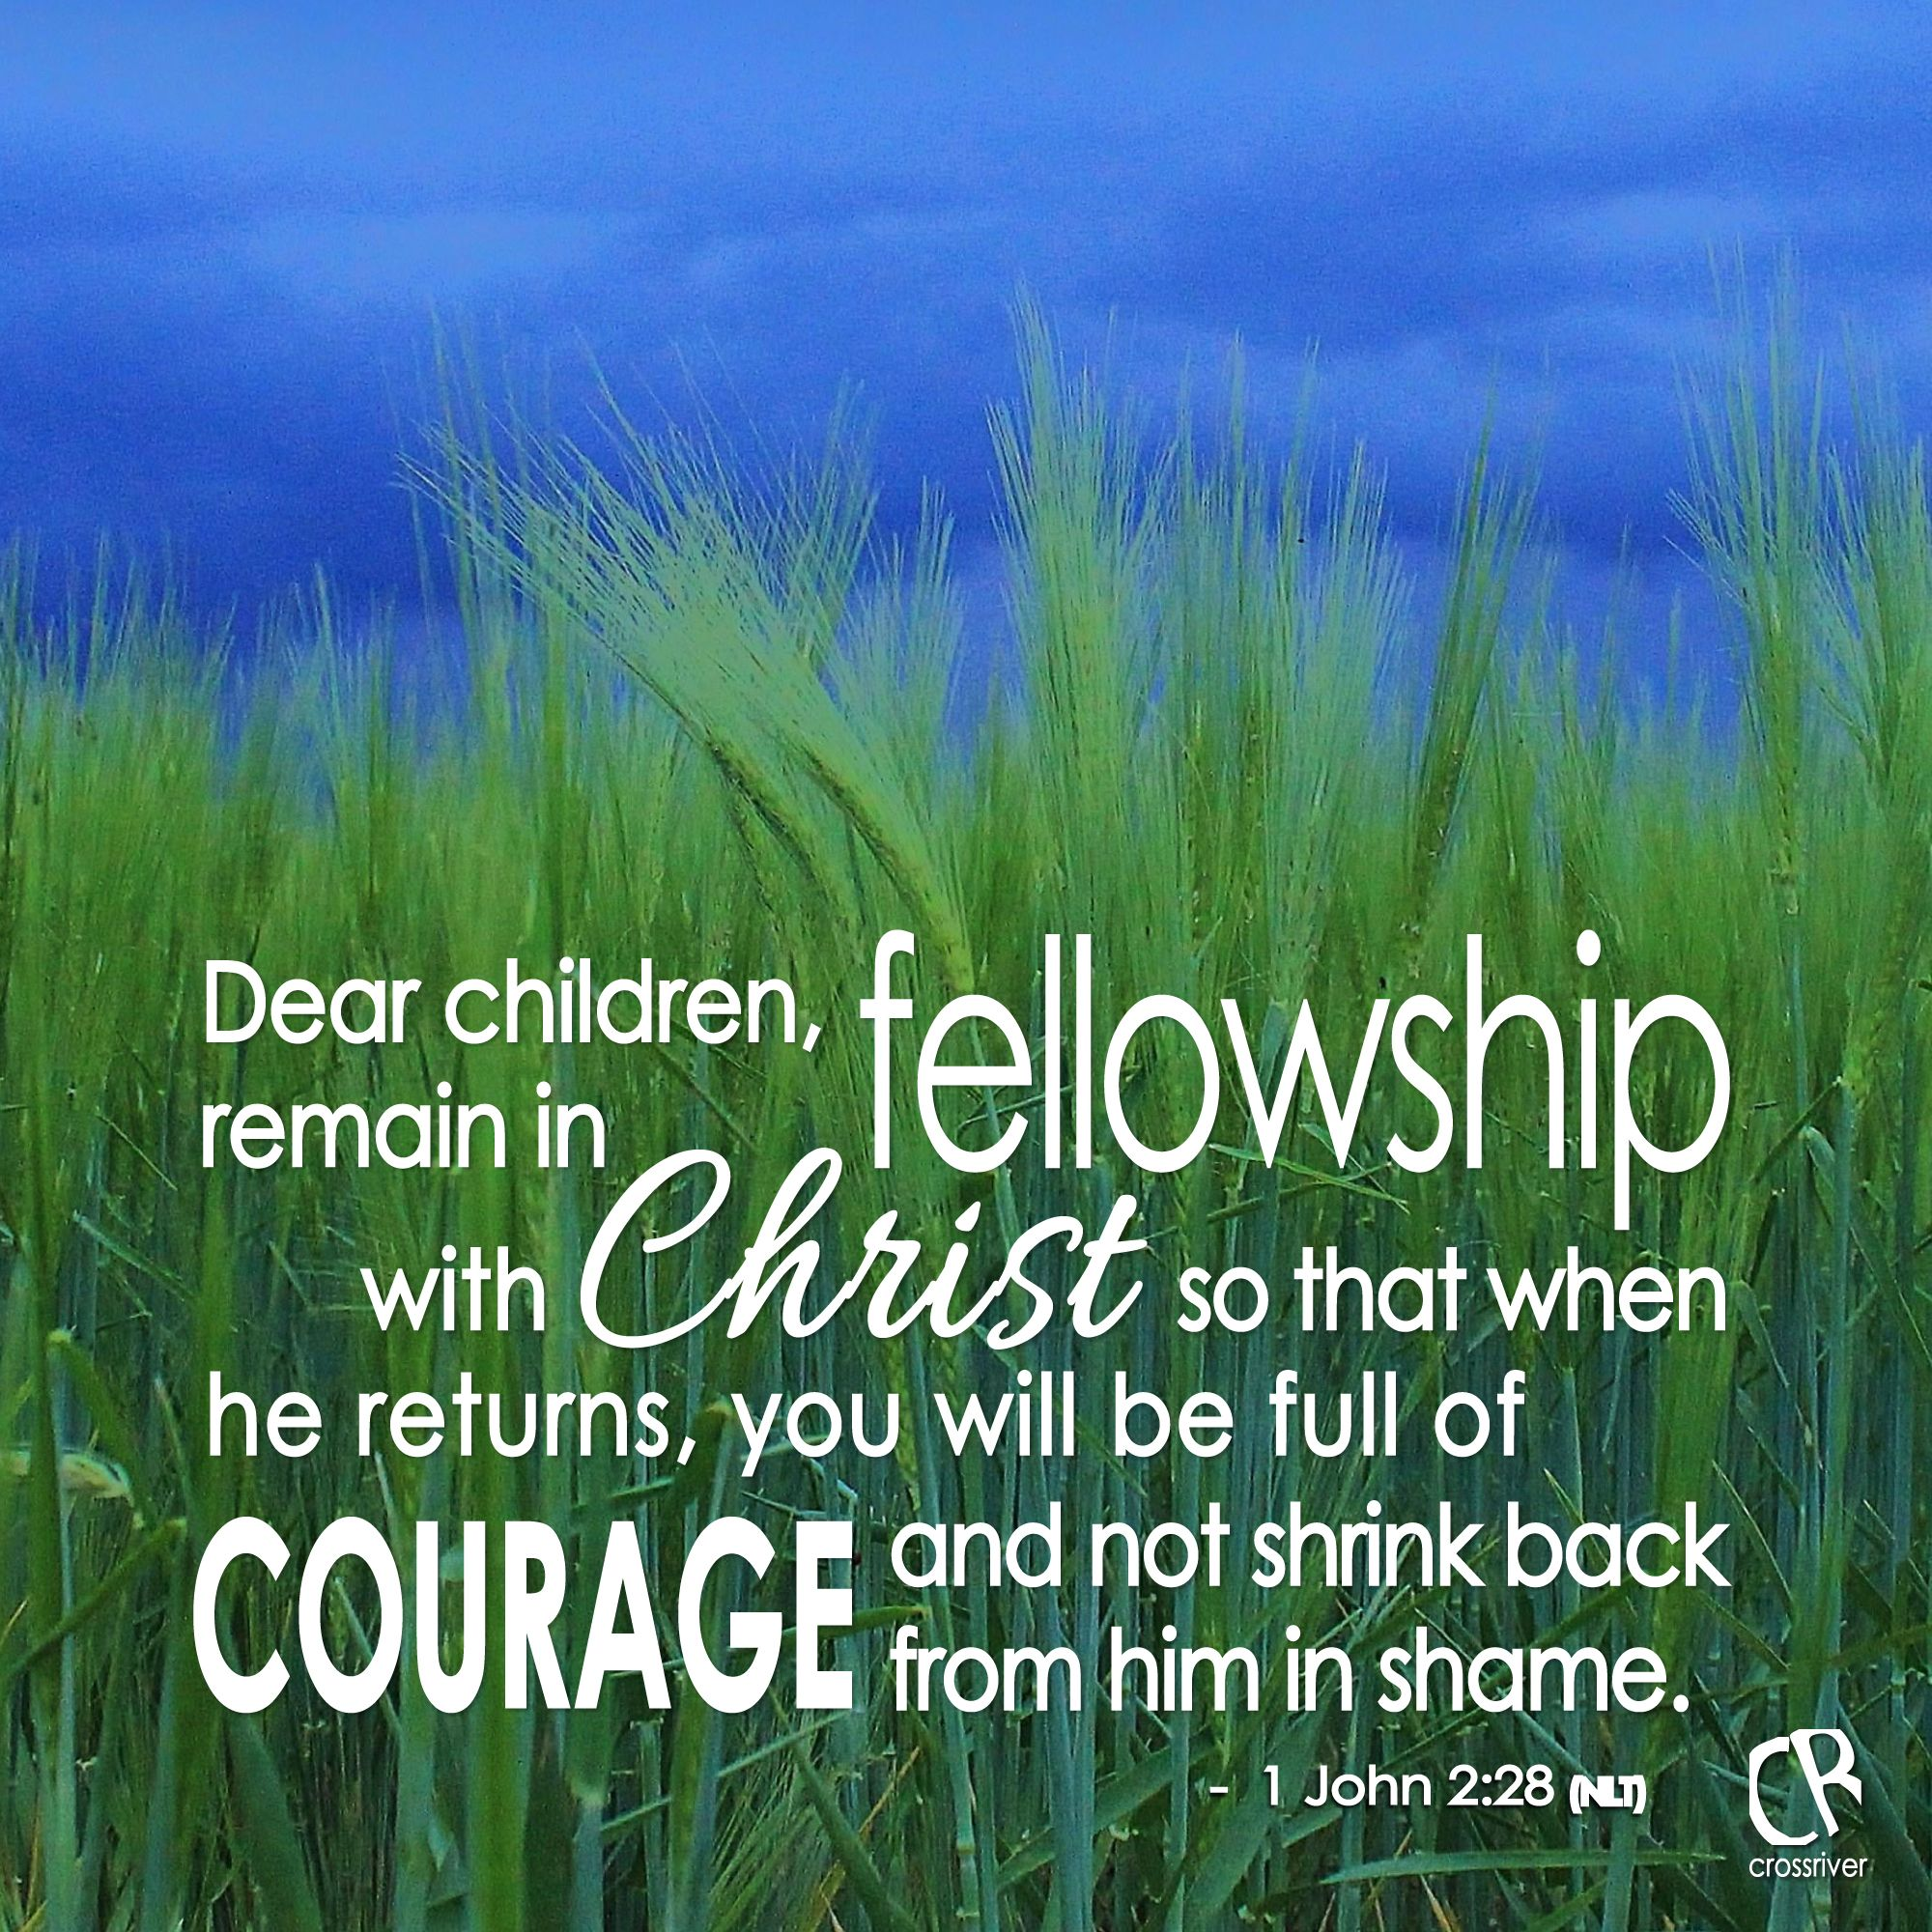 And now, dear children, remain in fellowship with Christ so that when he returns, you will be full of courage and not shrink back from him in shame. - 1 John 2:28 #NLT #Bible verse   CrossRiverMedia.com